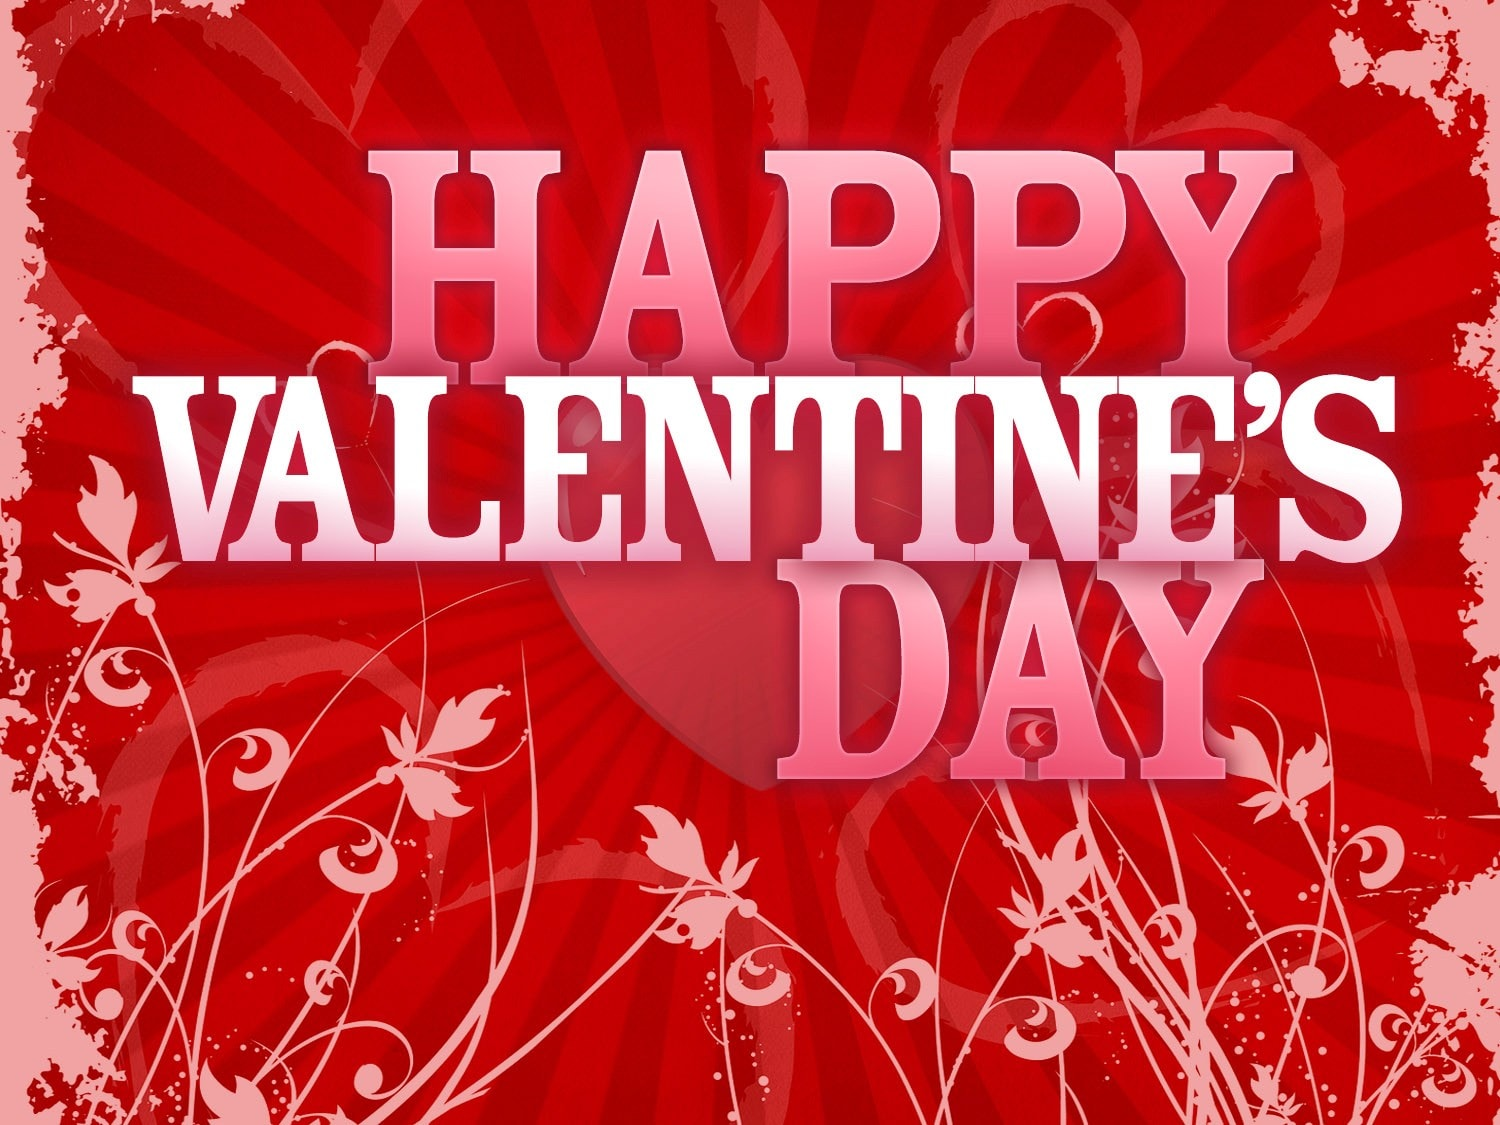 Happy Valentine's Day SMS for Friends for 2018